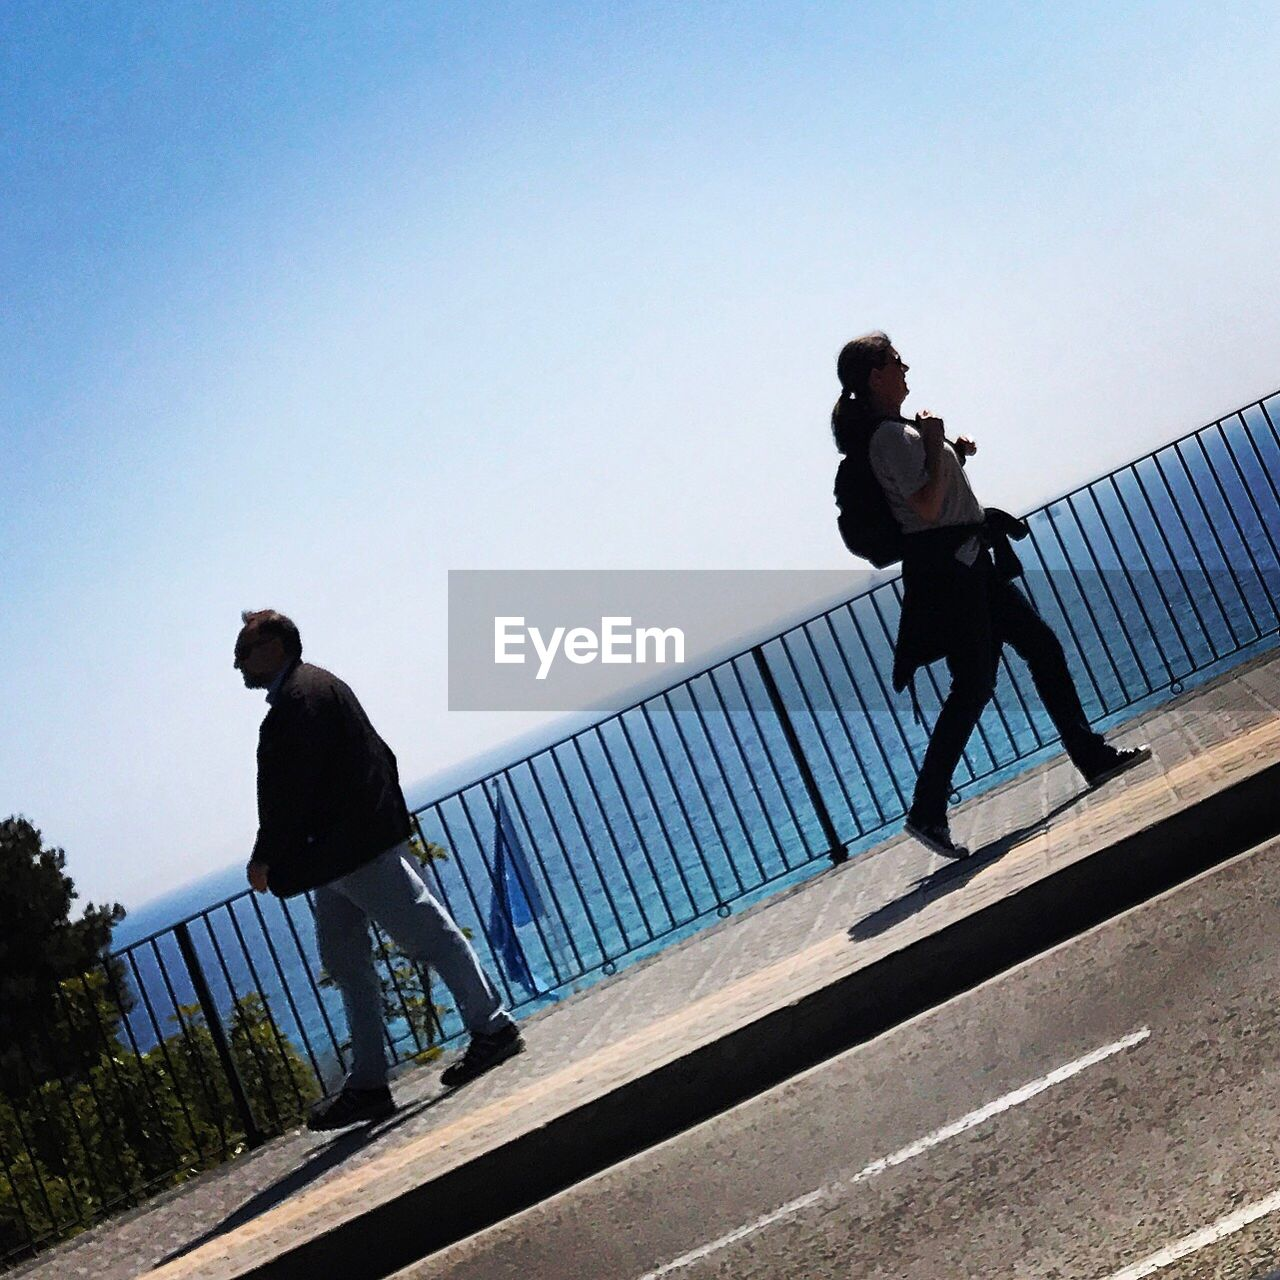 railing, full length, clear sky, day, real people, outdoors, lifestyles, men, leisure activity, low angle view, bridge - man made structure, two people, footbridge, friendship, sky, sportsman, people, adult